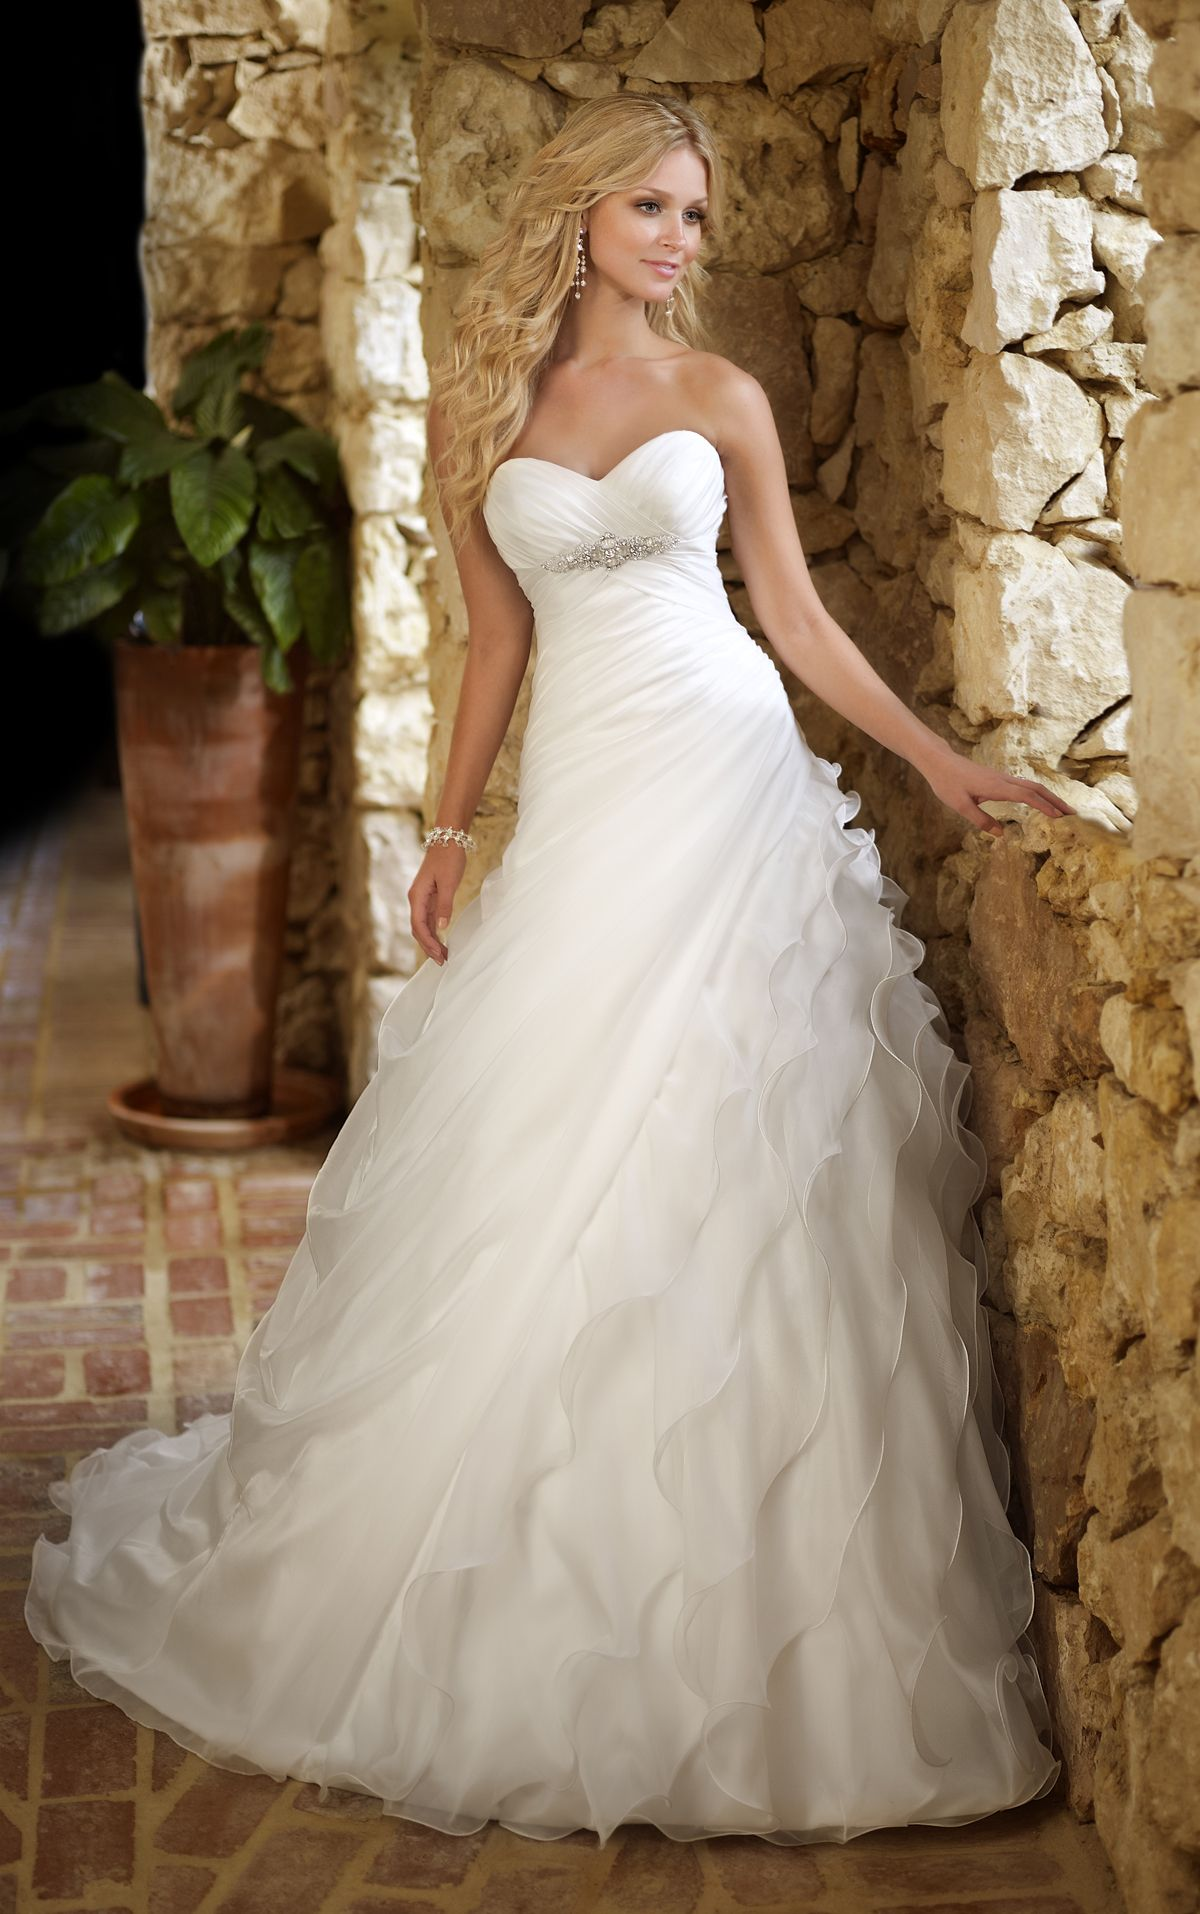 Sophisticated bridal gowns with sleeves feature an A line